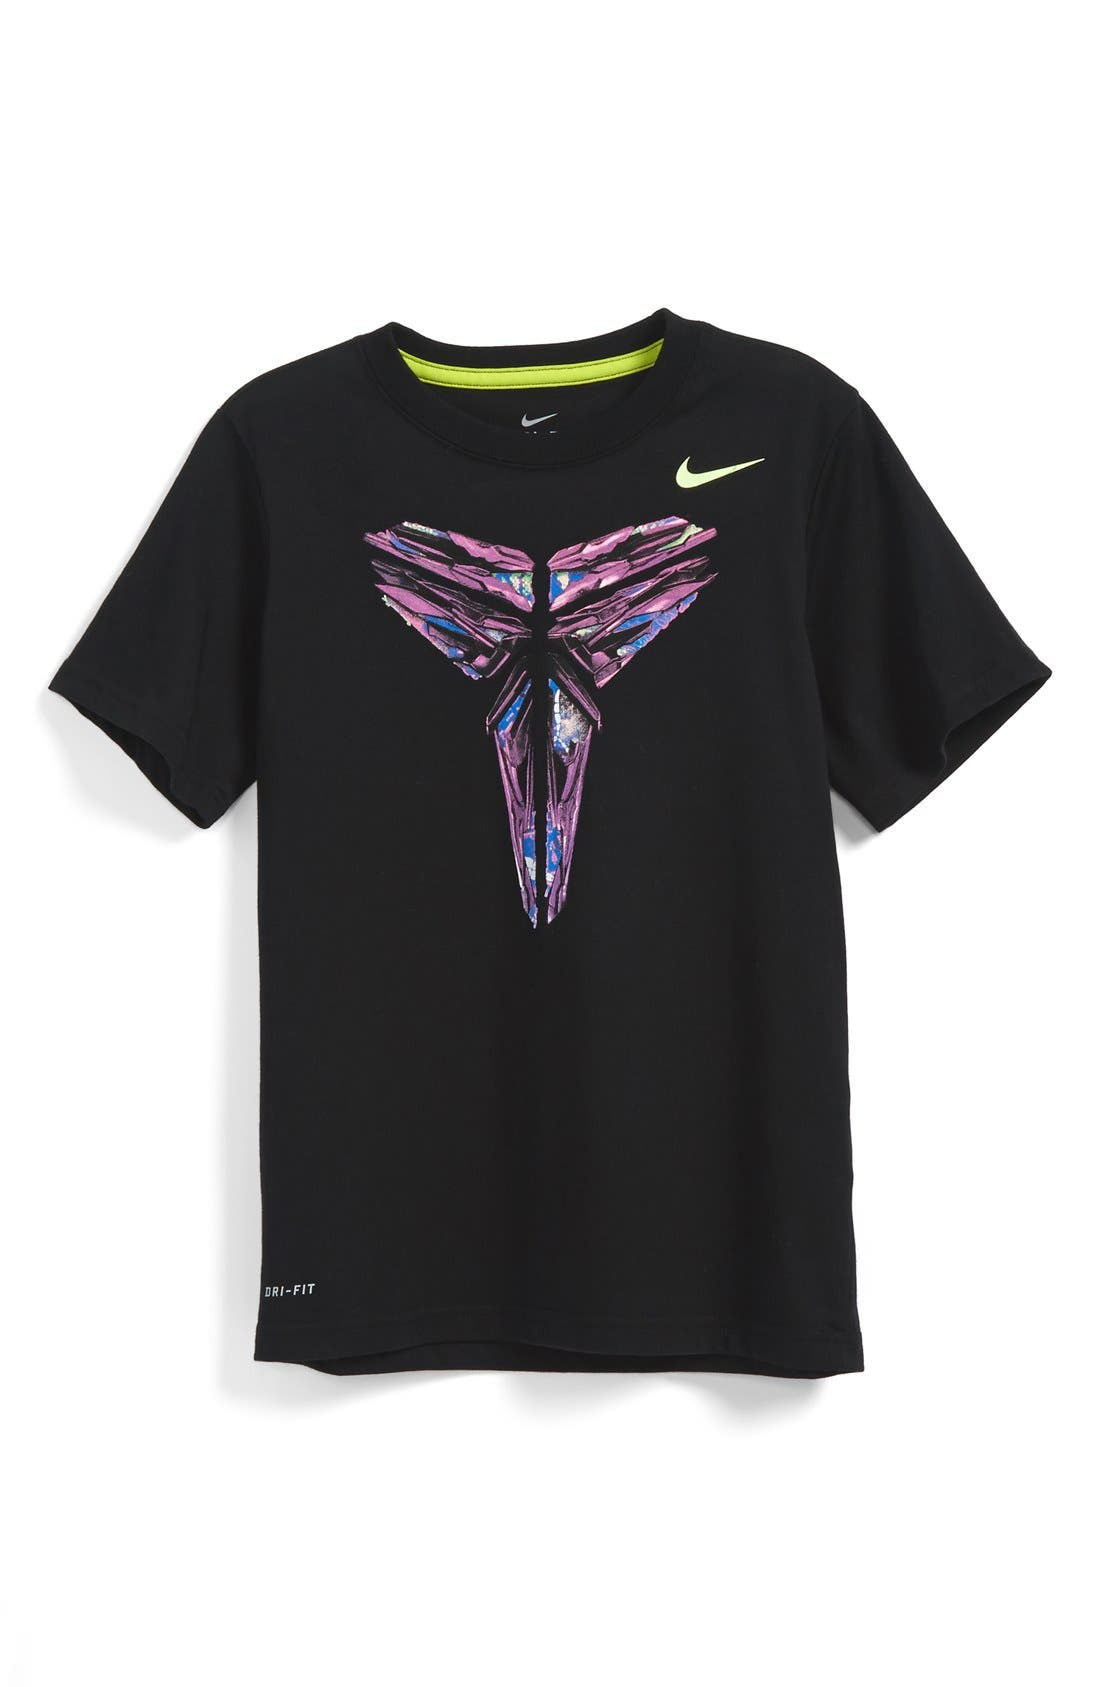 NIKE 'Kobe Sheath' Graphic T-Shirt, Main, color, 010